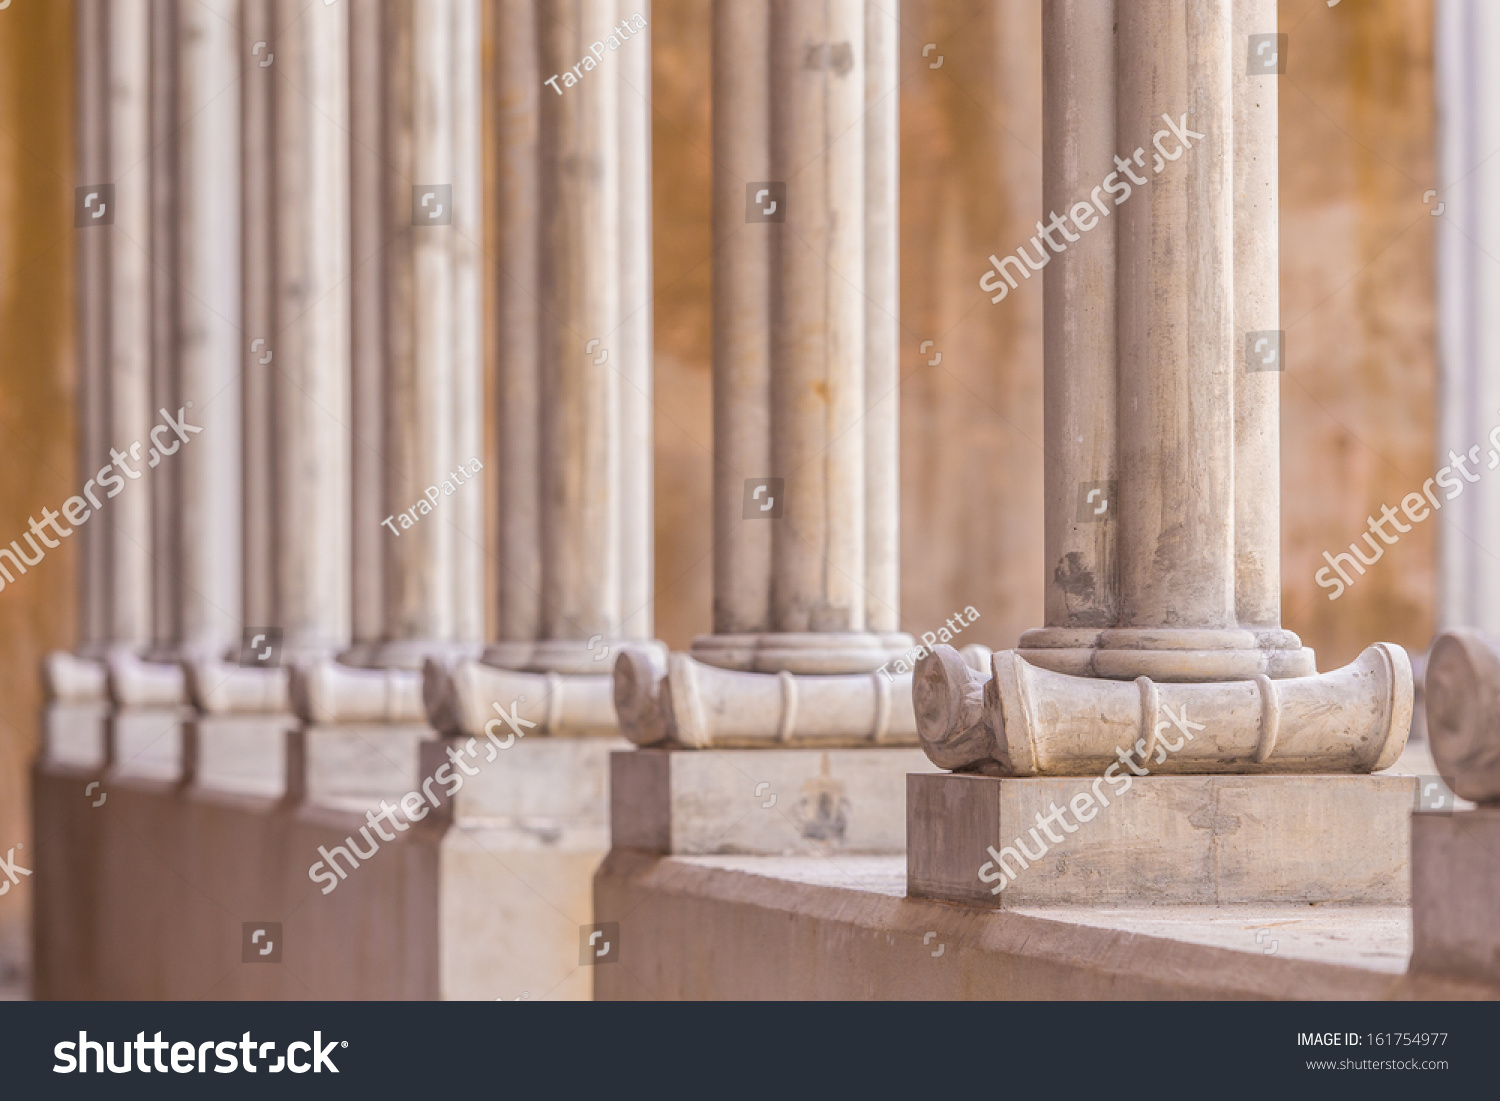 Ready Made Concrete : Ready made instant concrete pillars line up stock photo